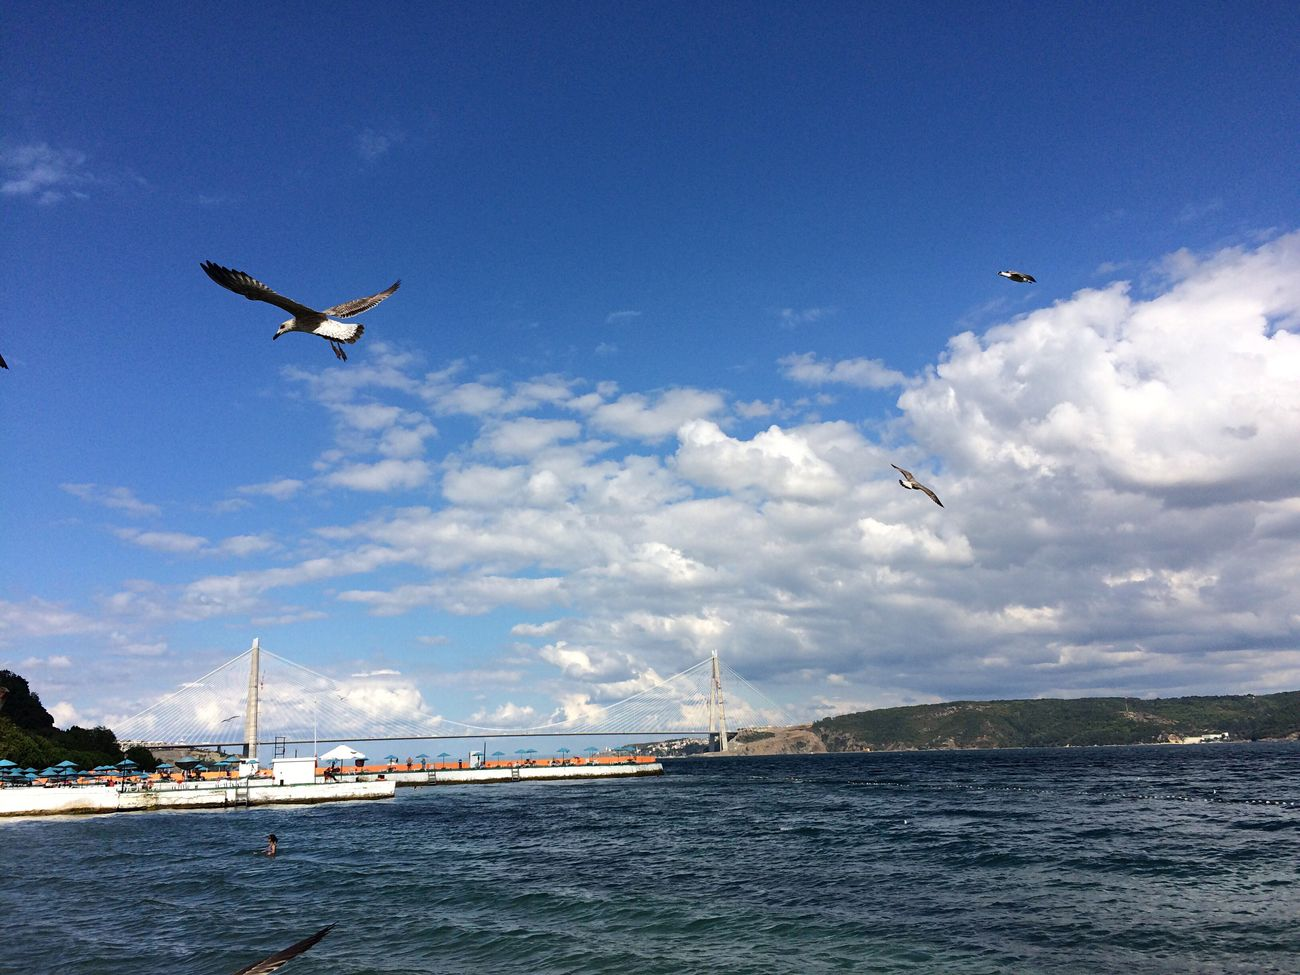 Flying Sky Animals In The Wild Bird Animal Themes Water Mid-air Sea Day Cloud - Sky Transportation City Animal Wildlife Outdoors No People Nature One Animal Scenics Architecture Beauty In Nature Beach Nature Like Cloud Wildlife